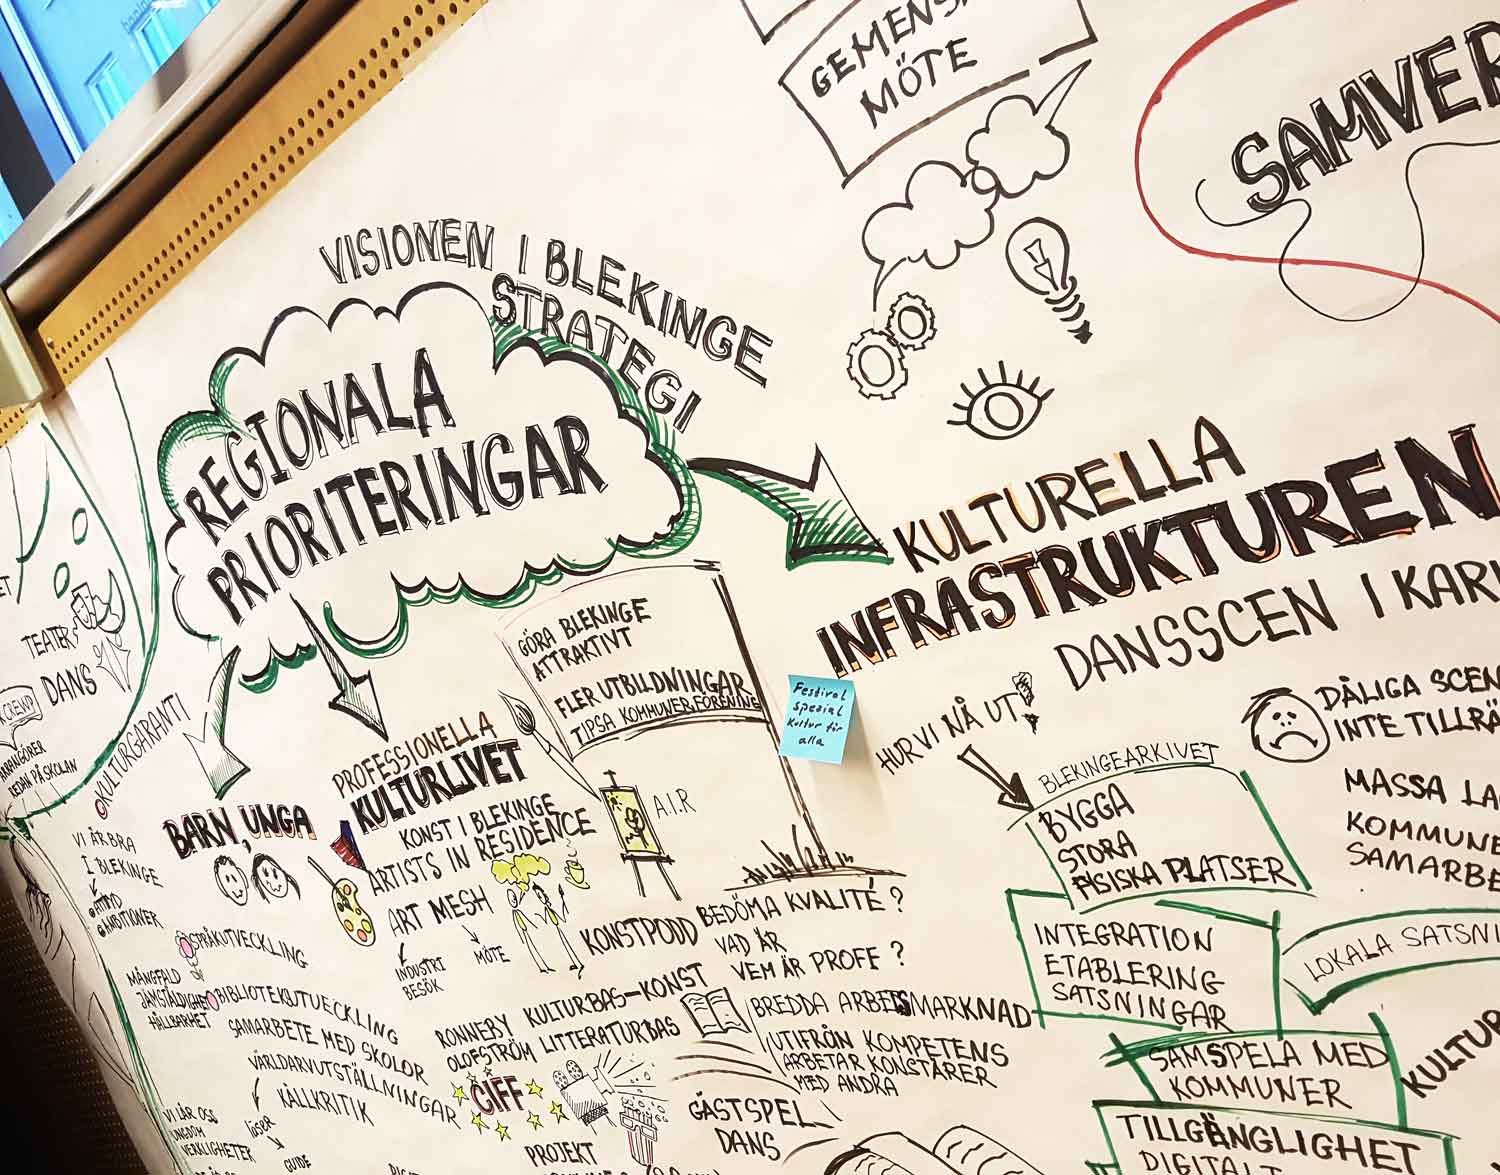 Region-Blekinge-workshop-2018-graphic-scribing-by-Lanagraphic-3